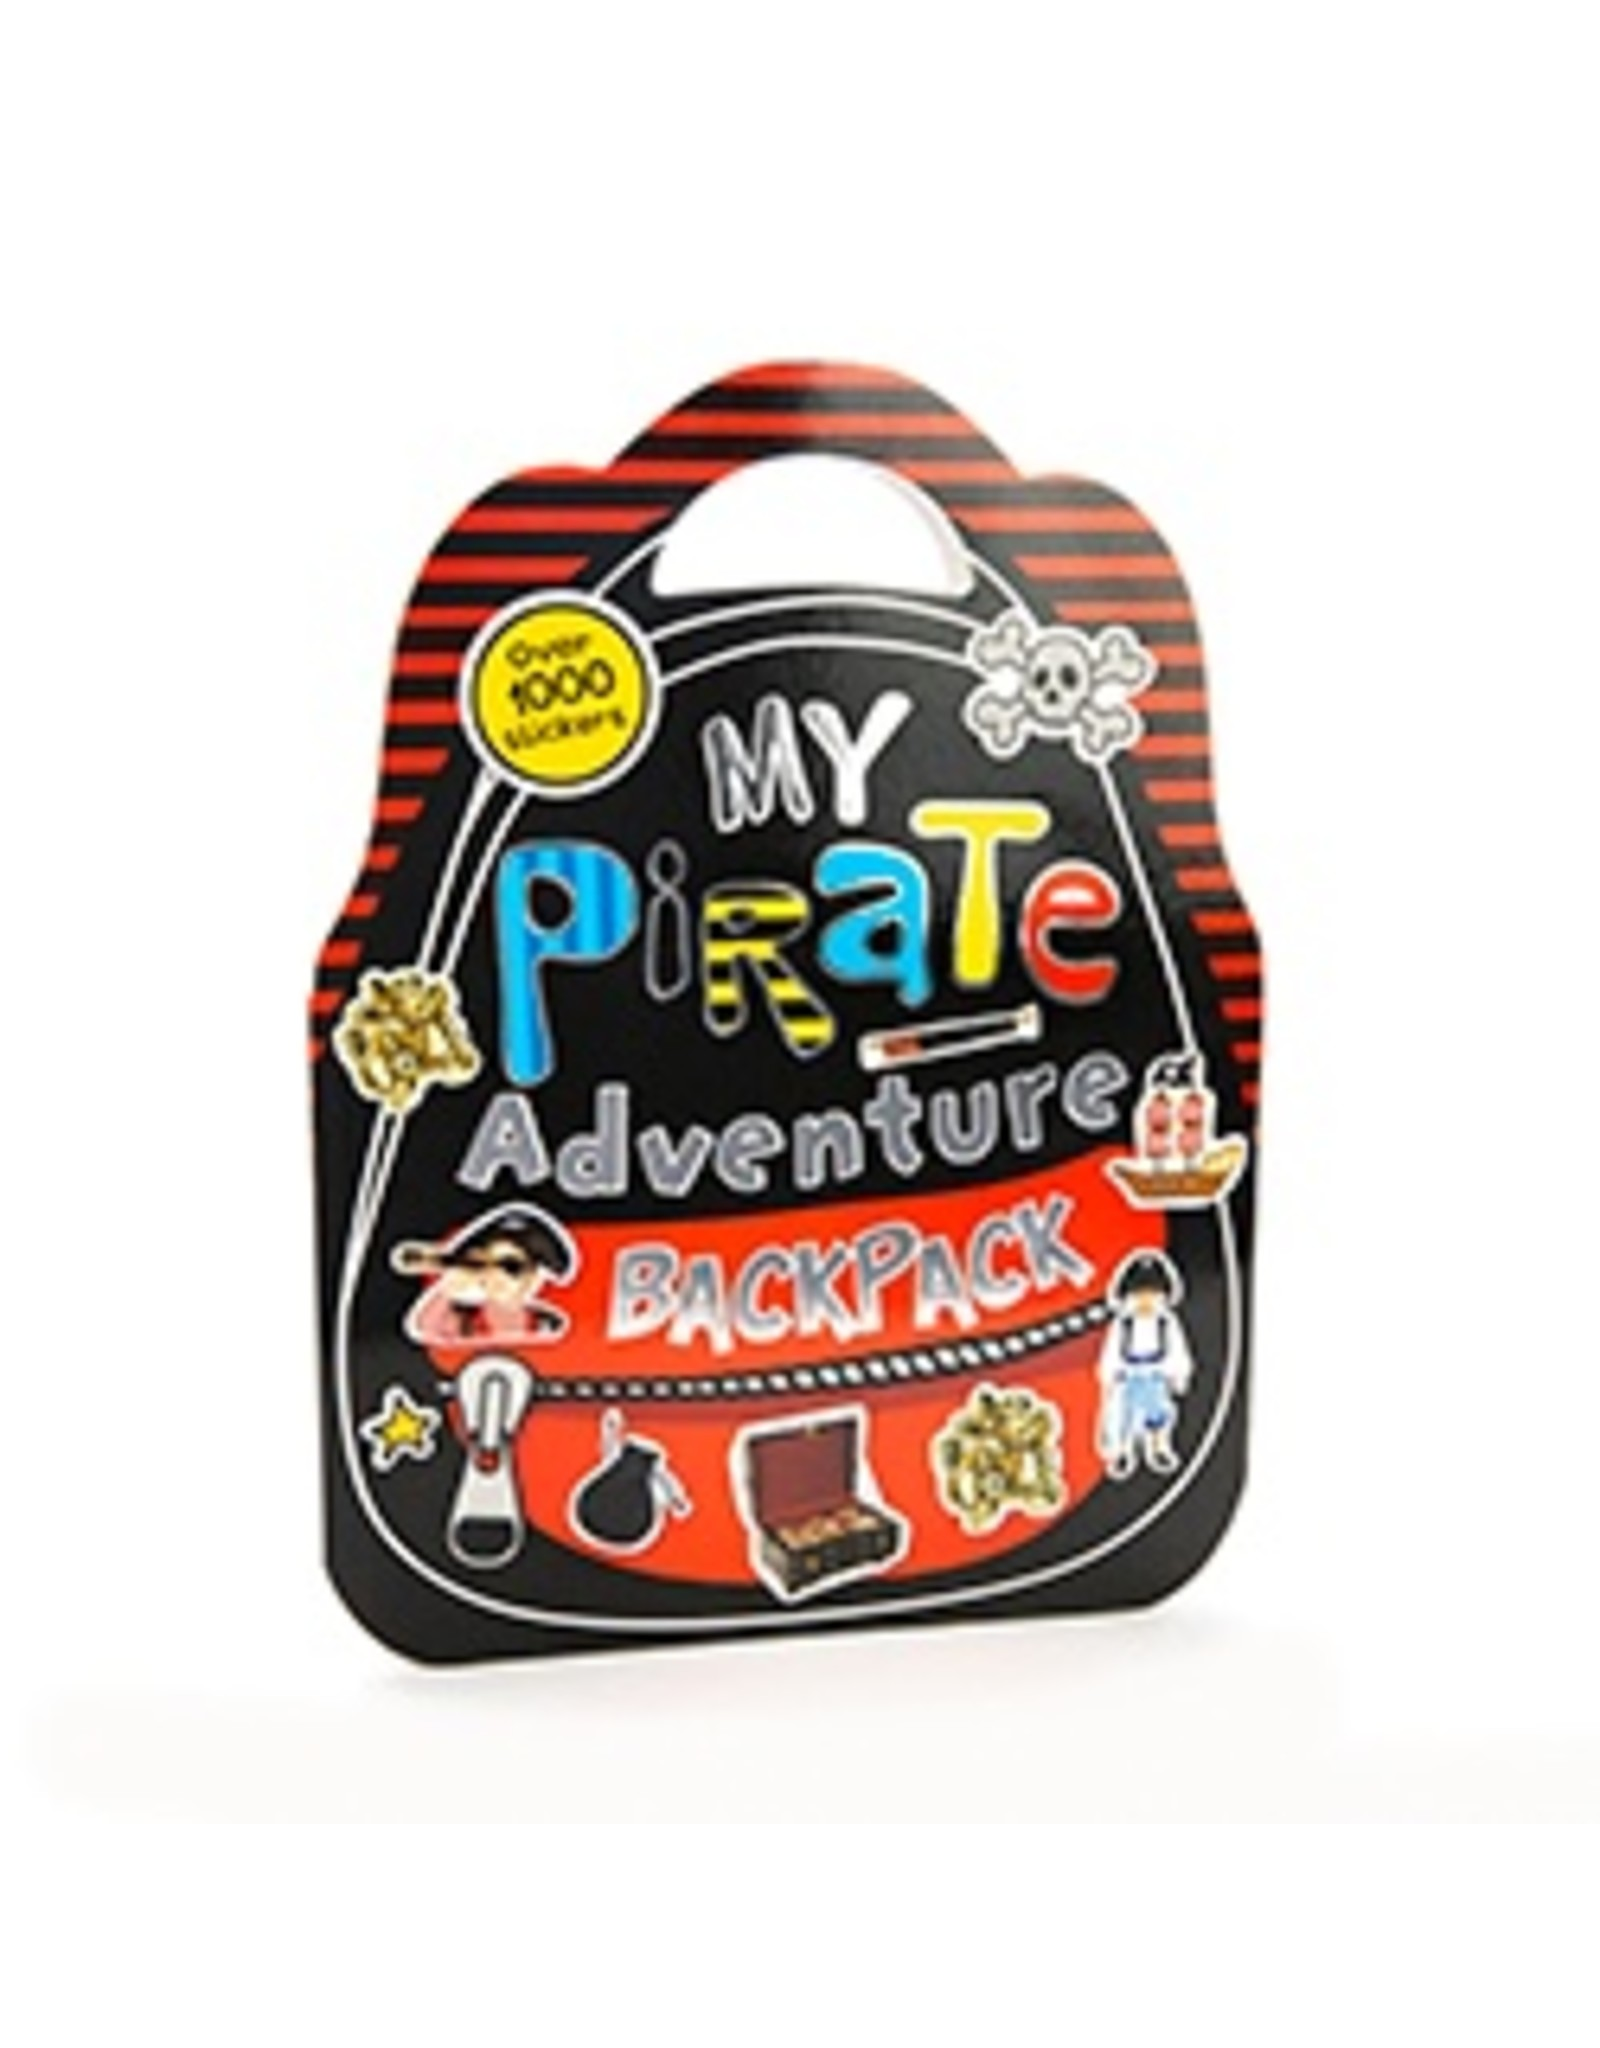 My Pirate Adventure Backpack - Activity Book